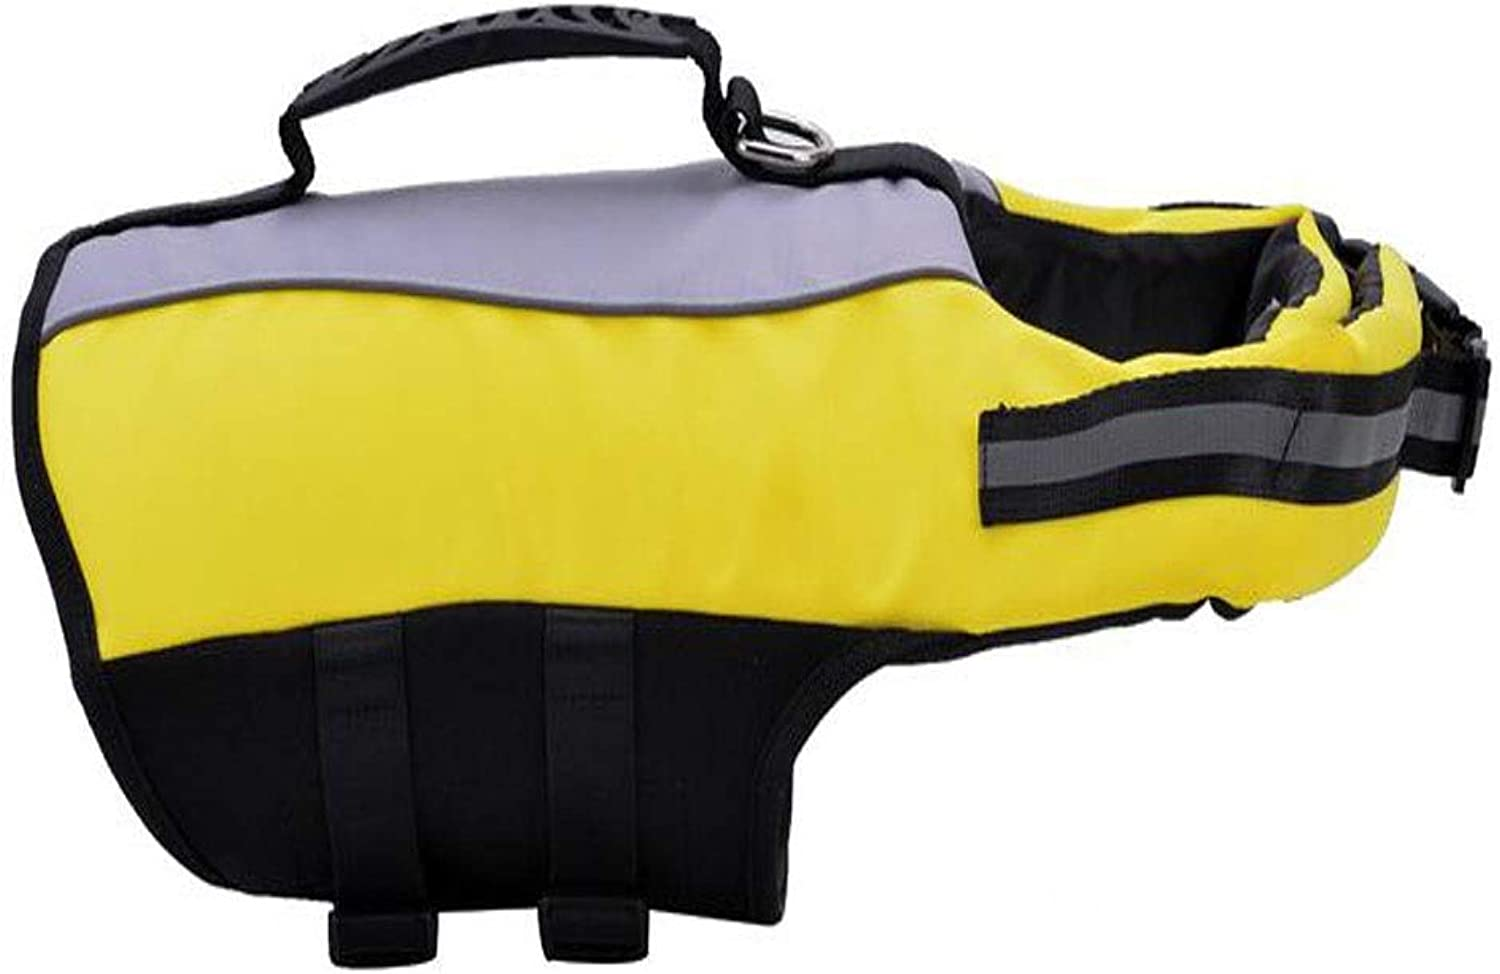 Life Jackets, Portable Dog Swim Vest, Oxford Cloth, Such As Multicolor Options Multicolord (Size   L, M, S) (color   Yellow, Size   M)